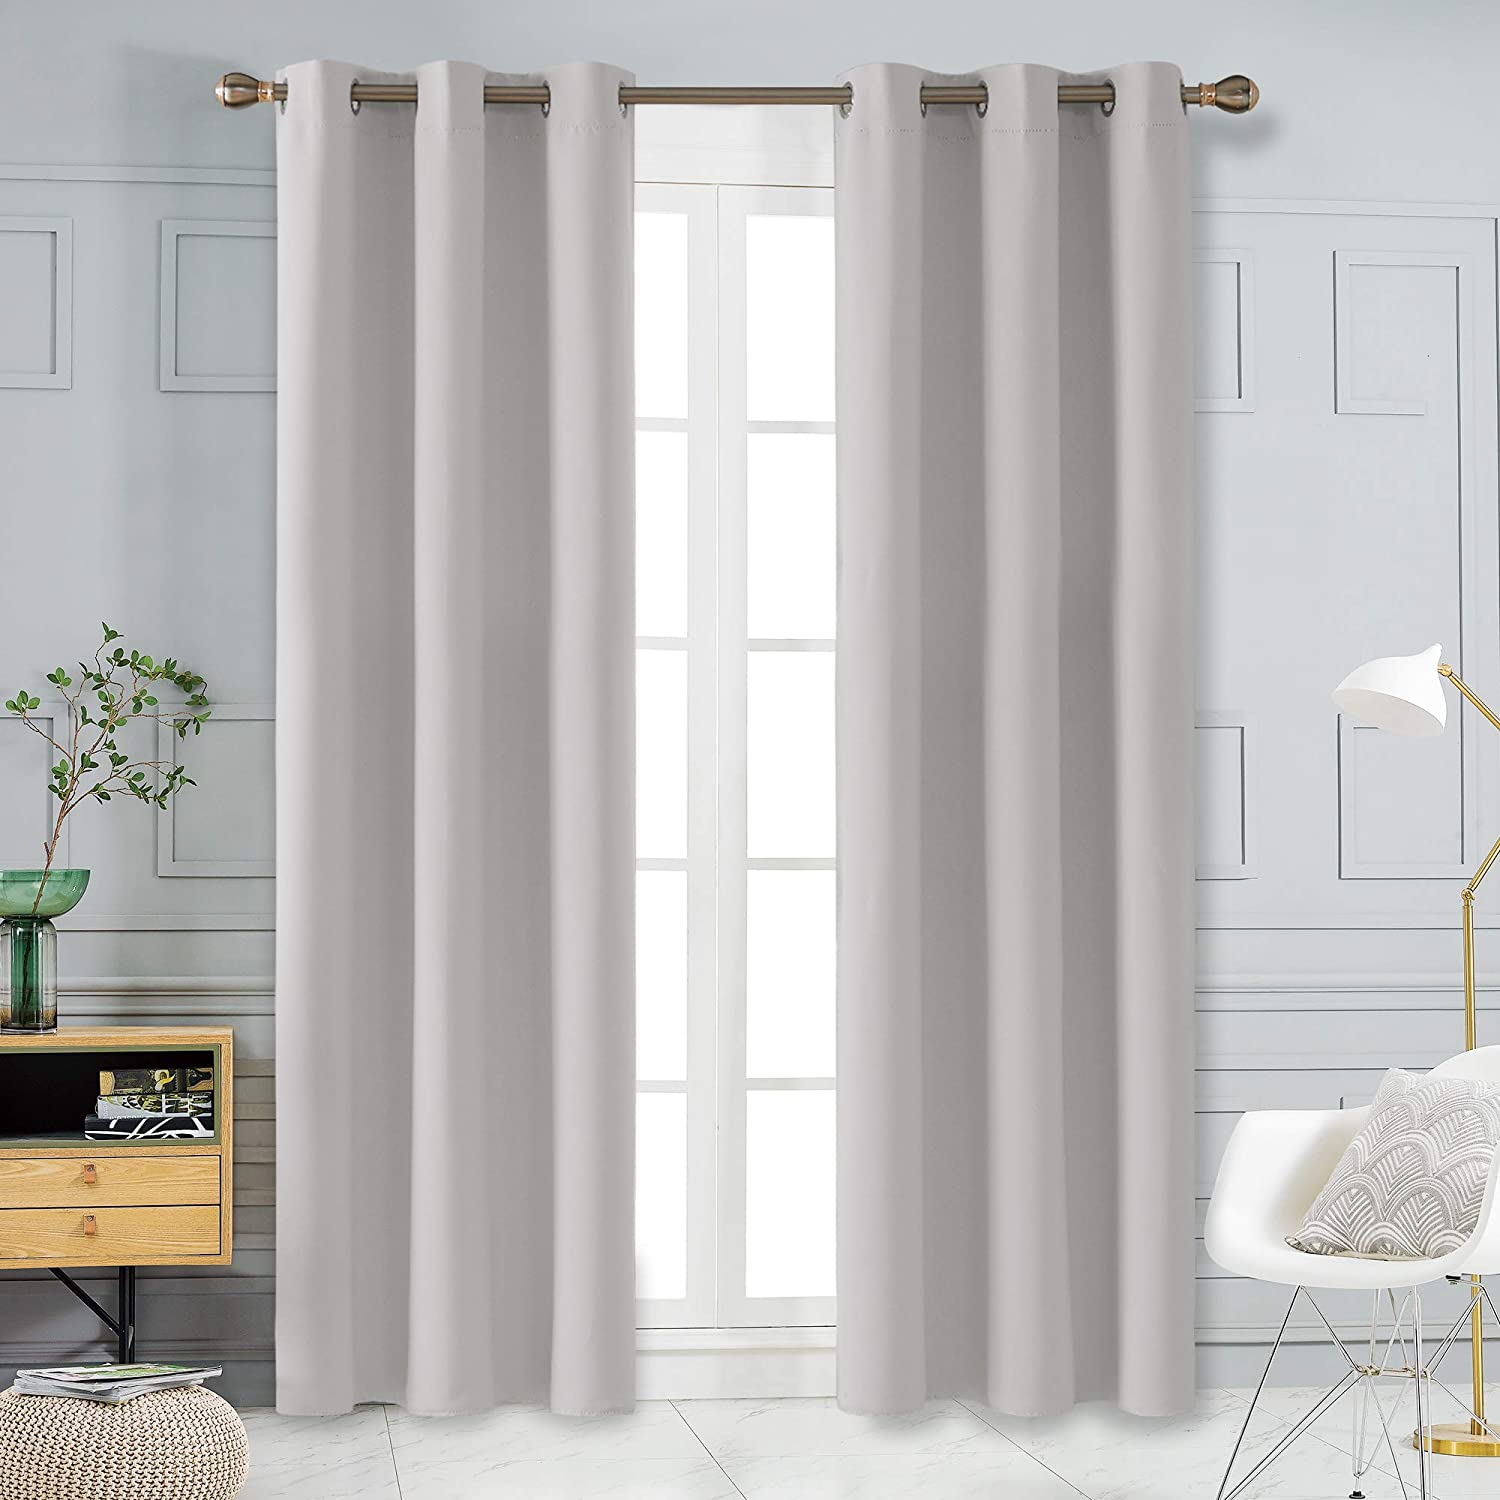 Deconovo Room Darkening Thermal Insulated Grommet Blackout Window Curtains for Living Room Curtain Panels Greyish White 42x95 Inch 1 Pair